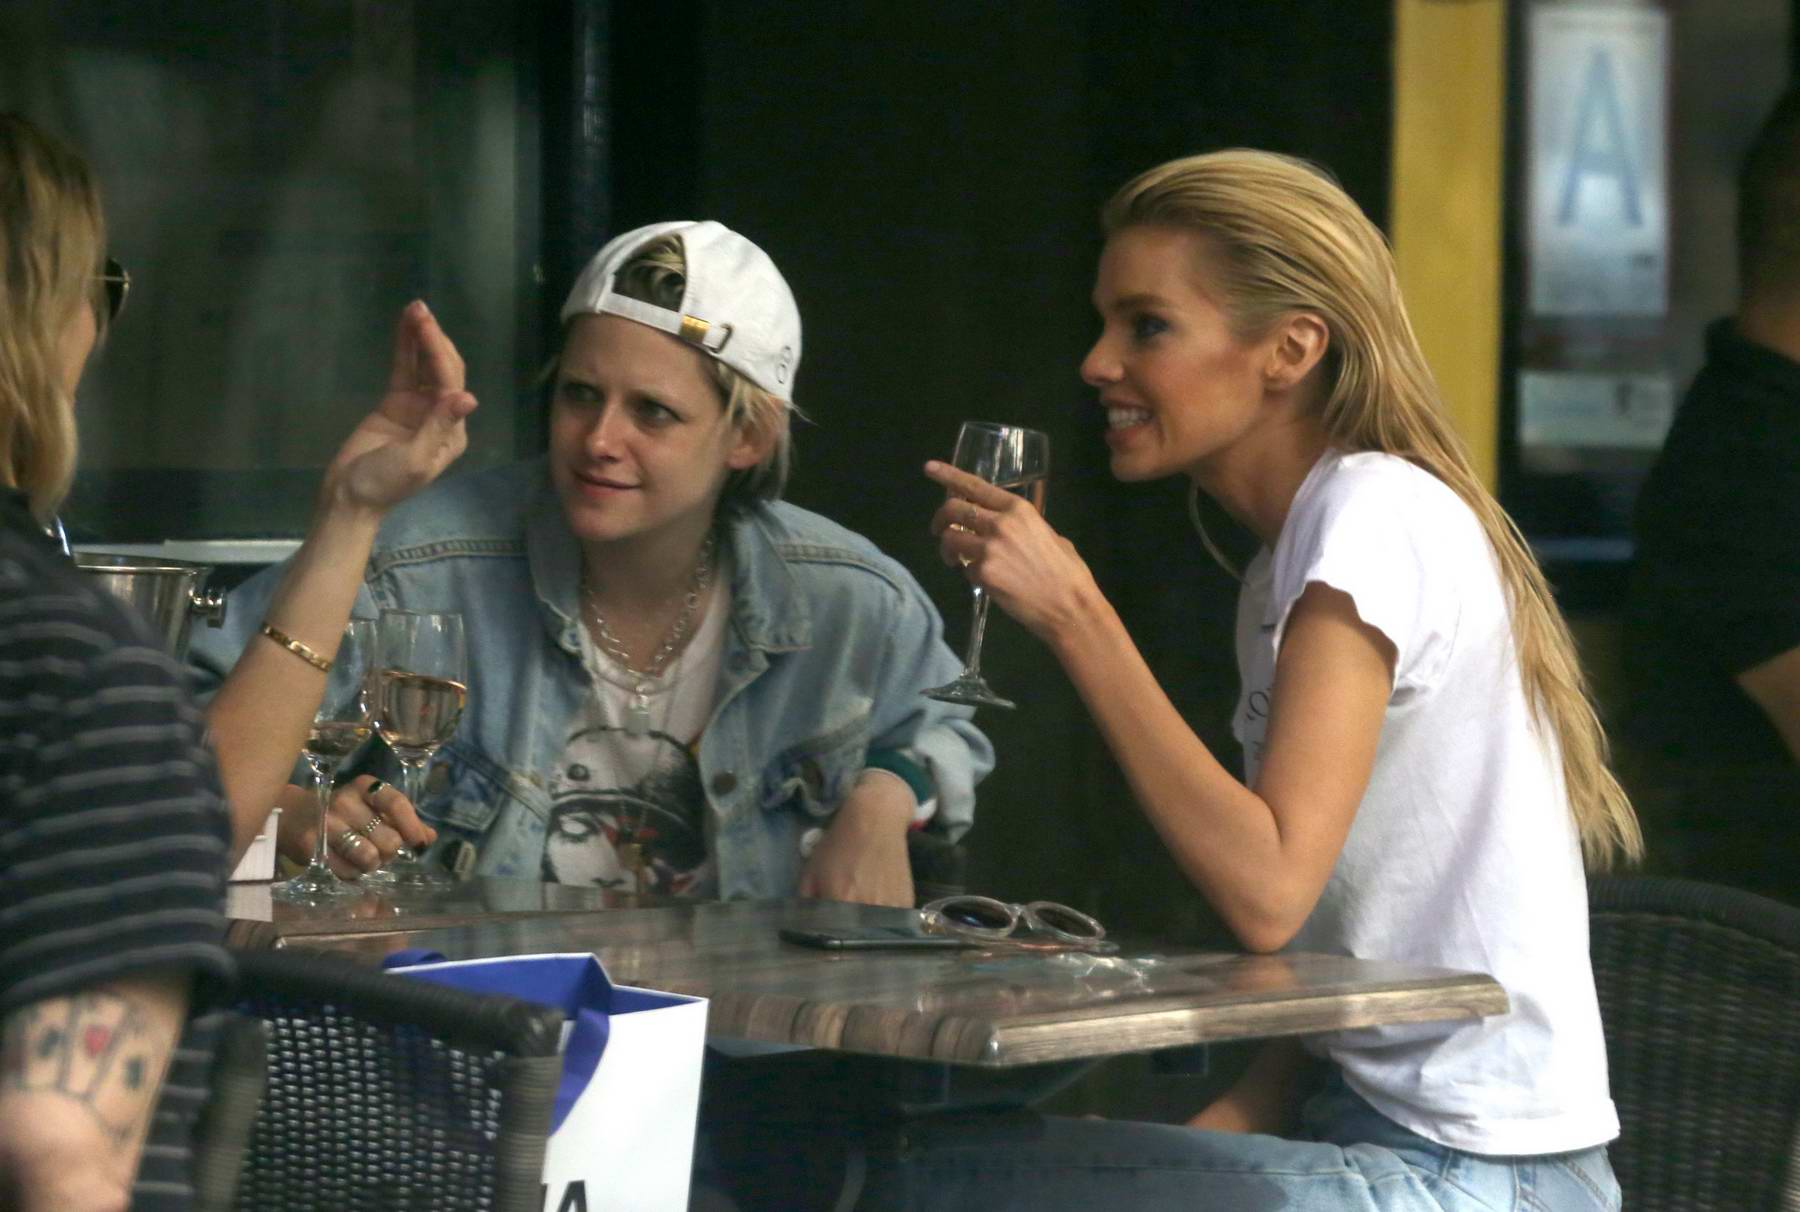 kristen stewart and stella maxwell enjoy a day of shopping and lunch together in new york city ...